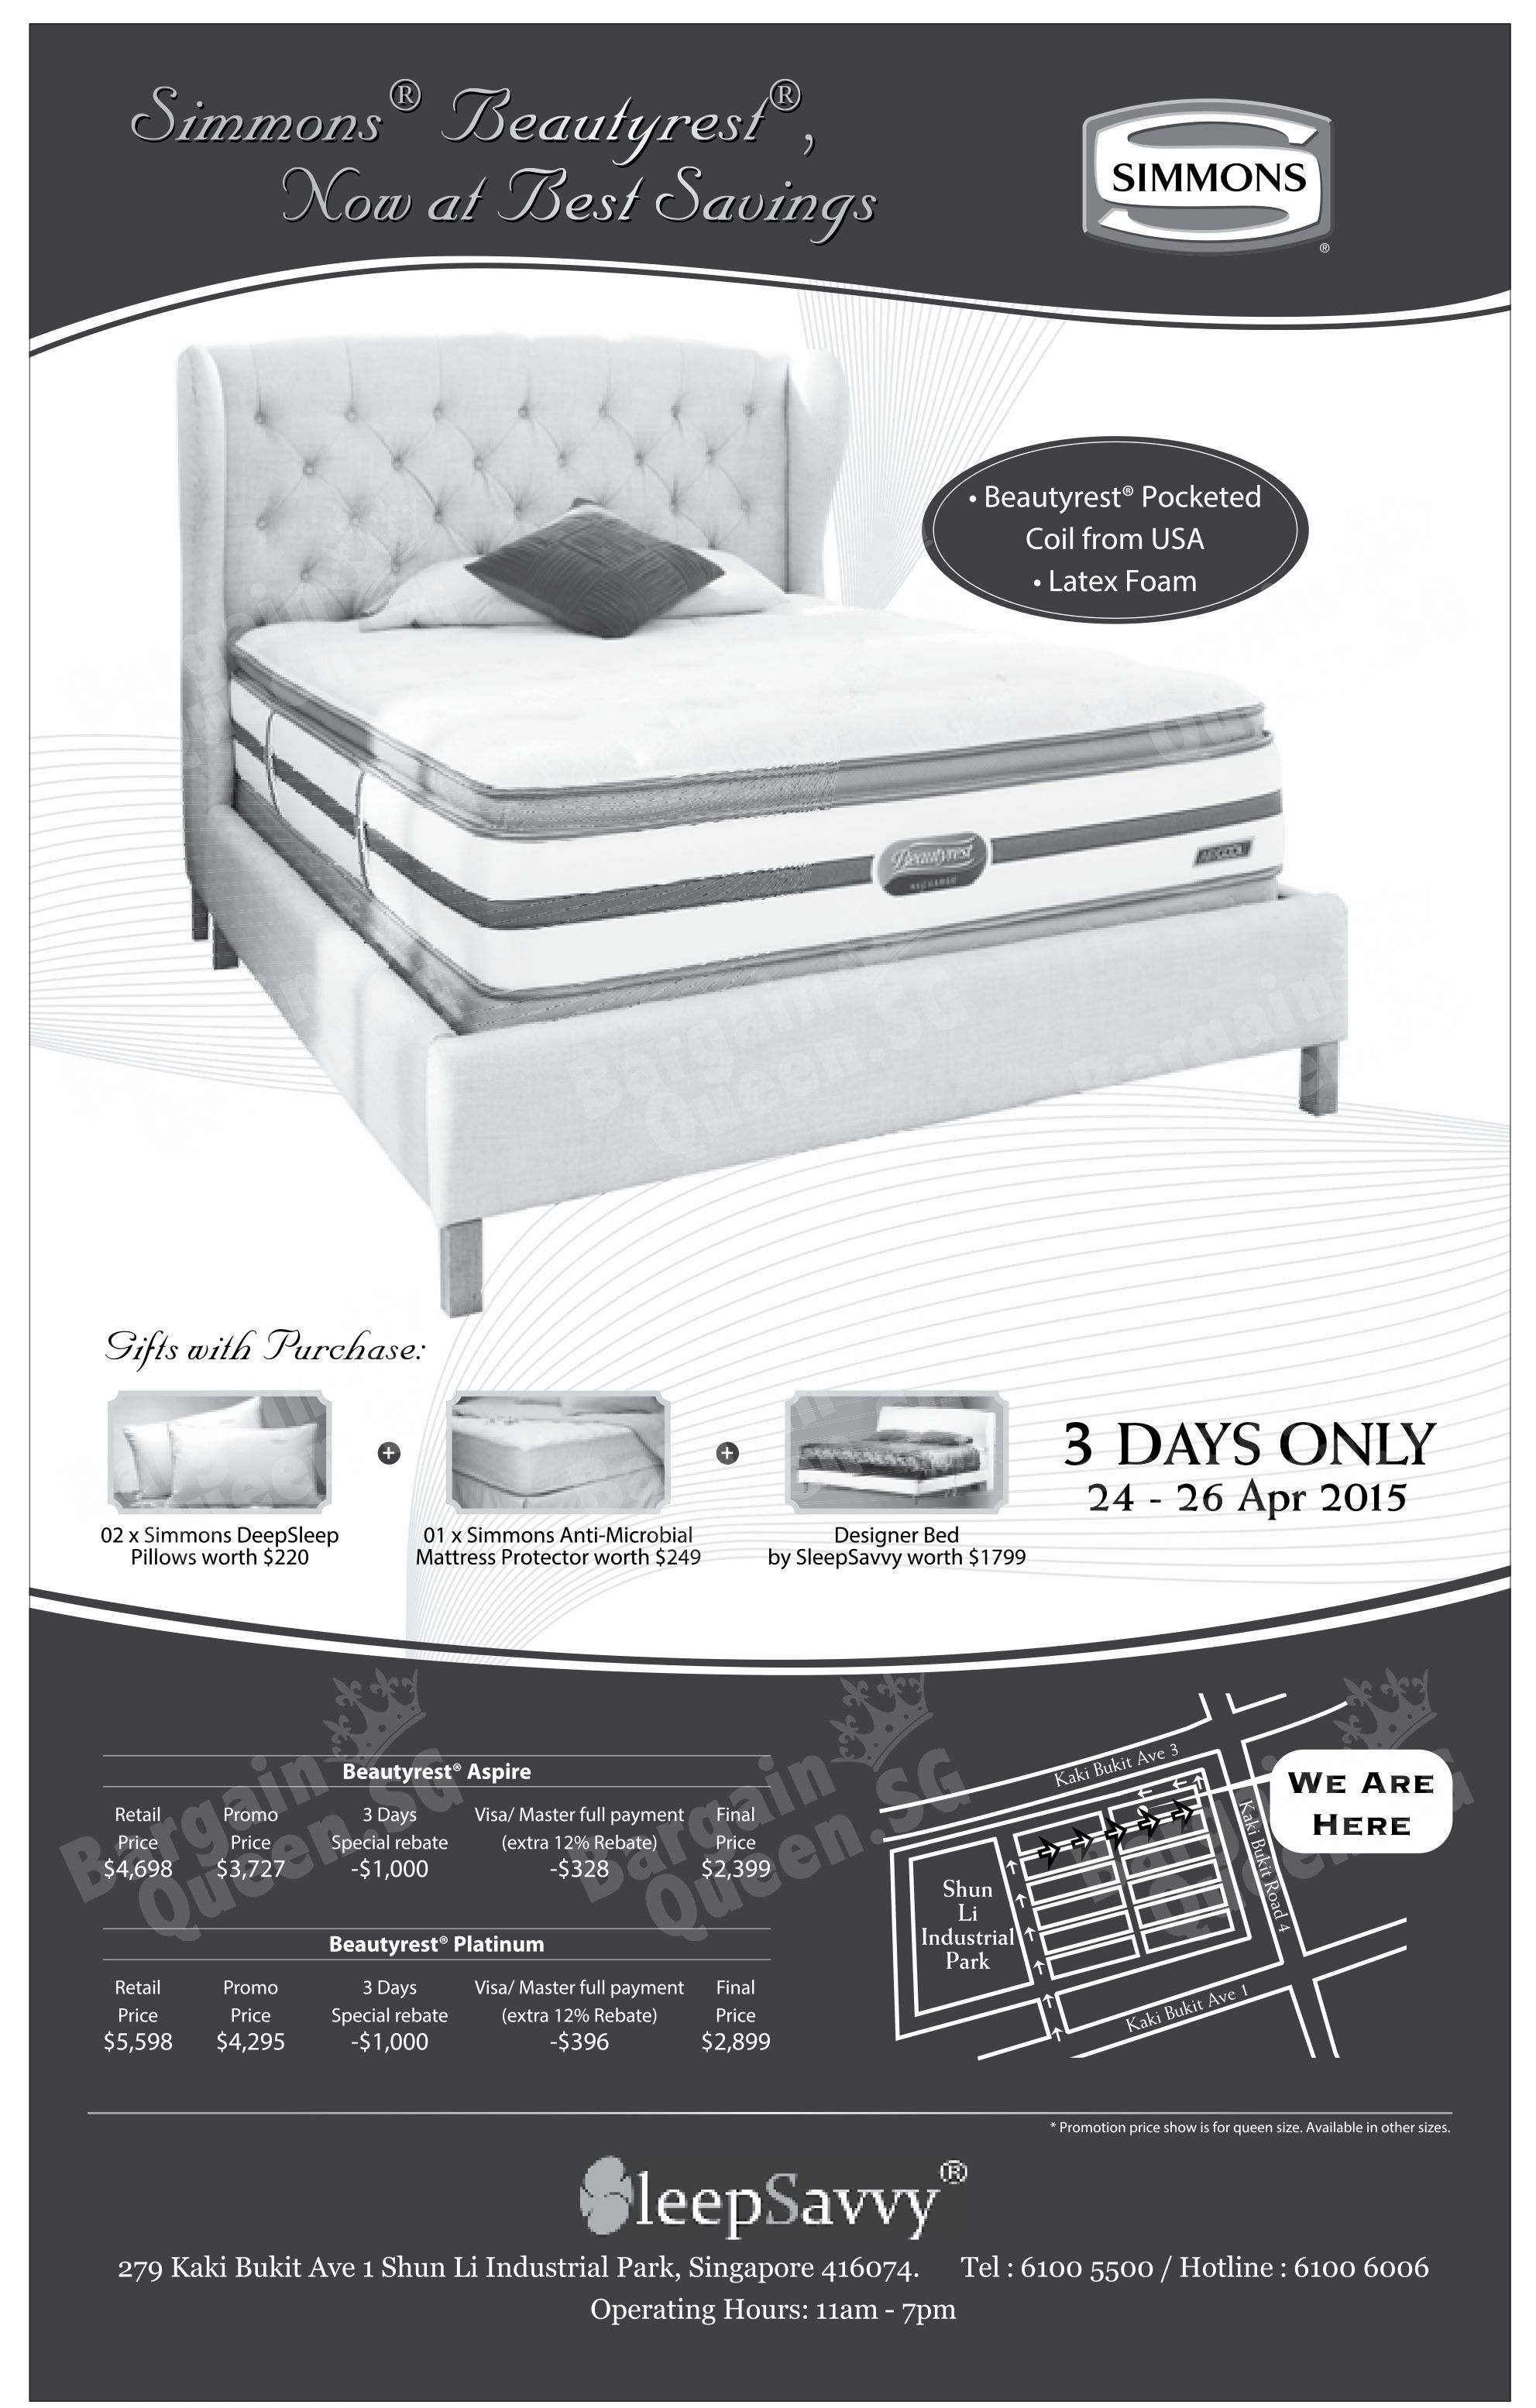 simmons ad singapore Google Search Mattress, Best savings